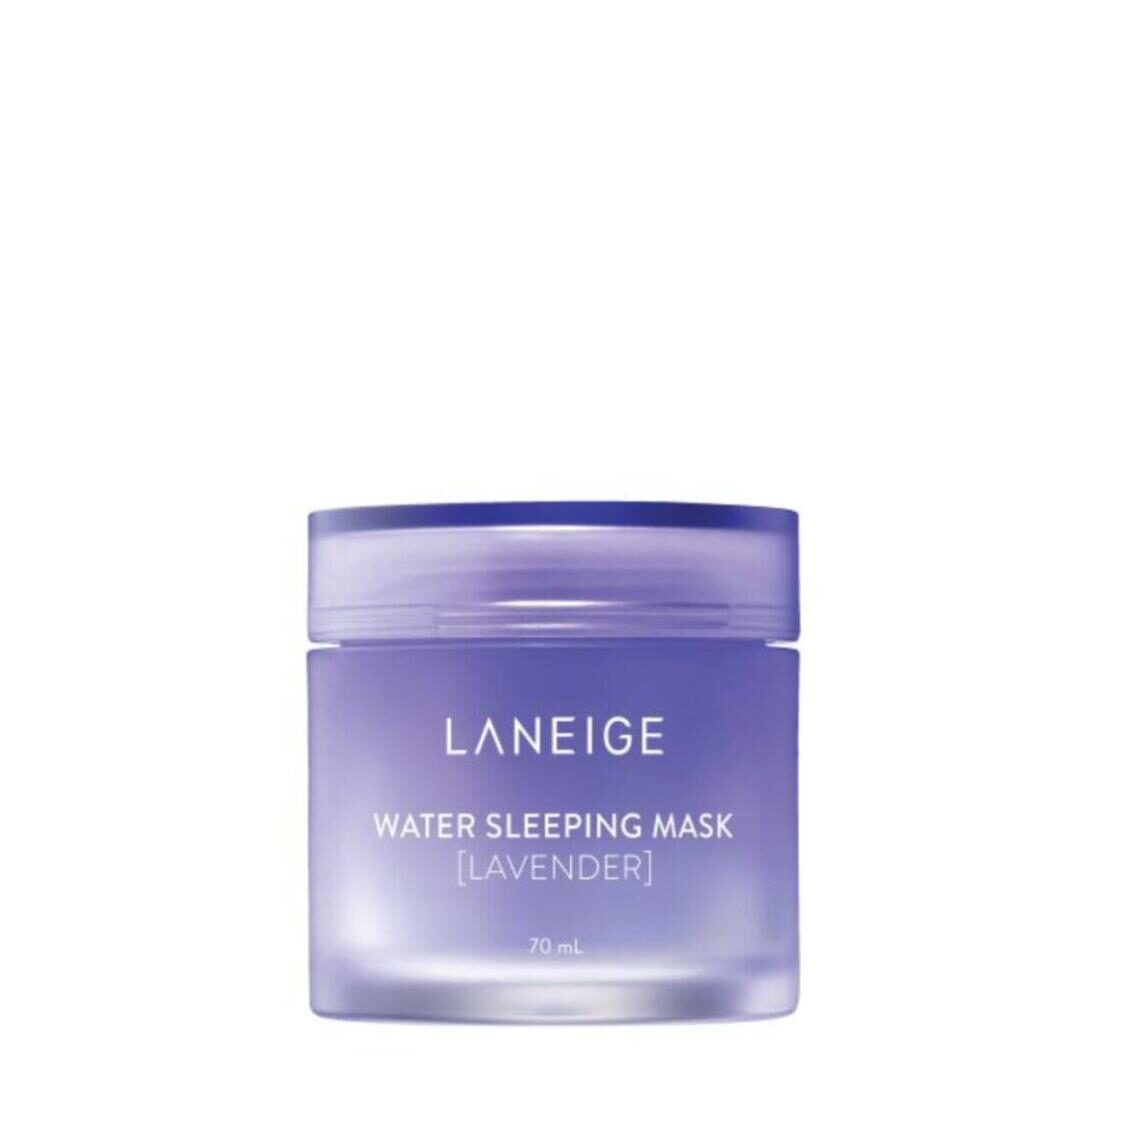 Water Sleeping Mask Lavendar 70ml